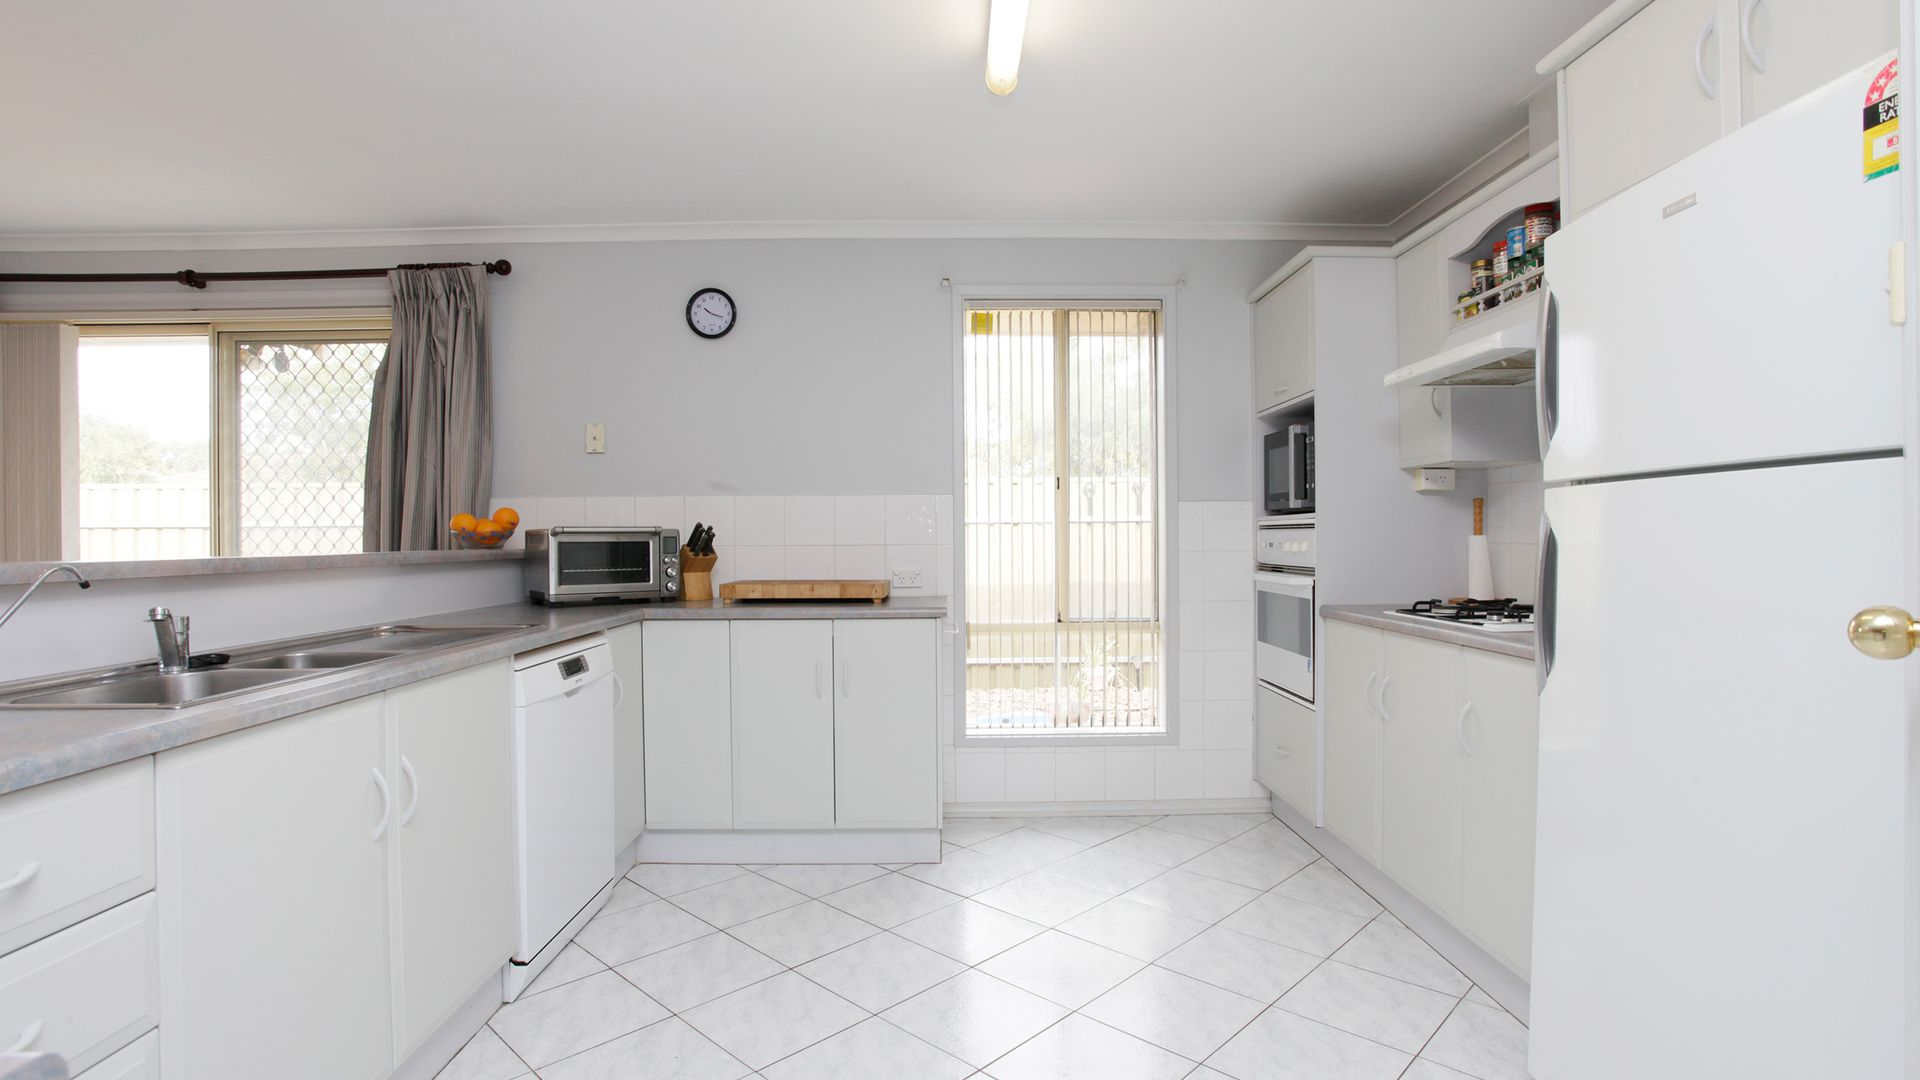 2 Tobin Way, Paralowie SA 5108, Image 1